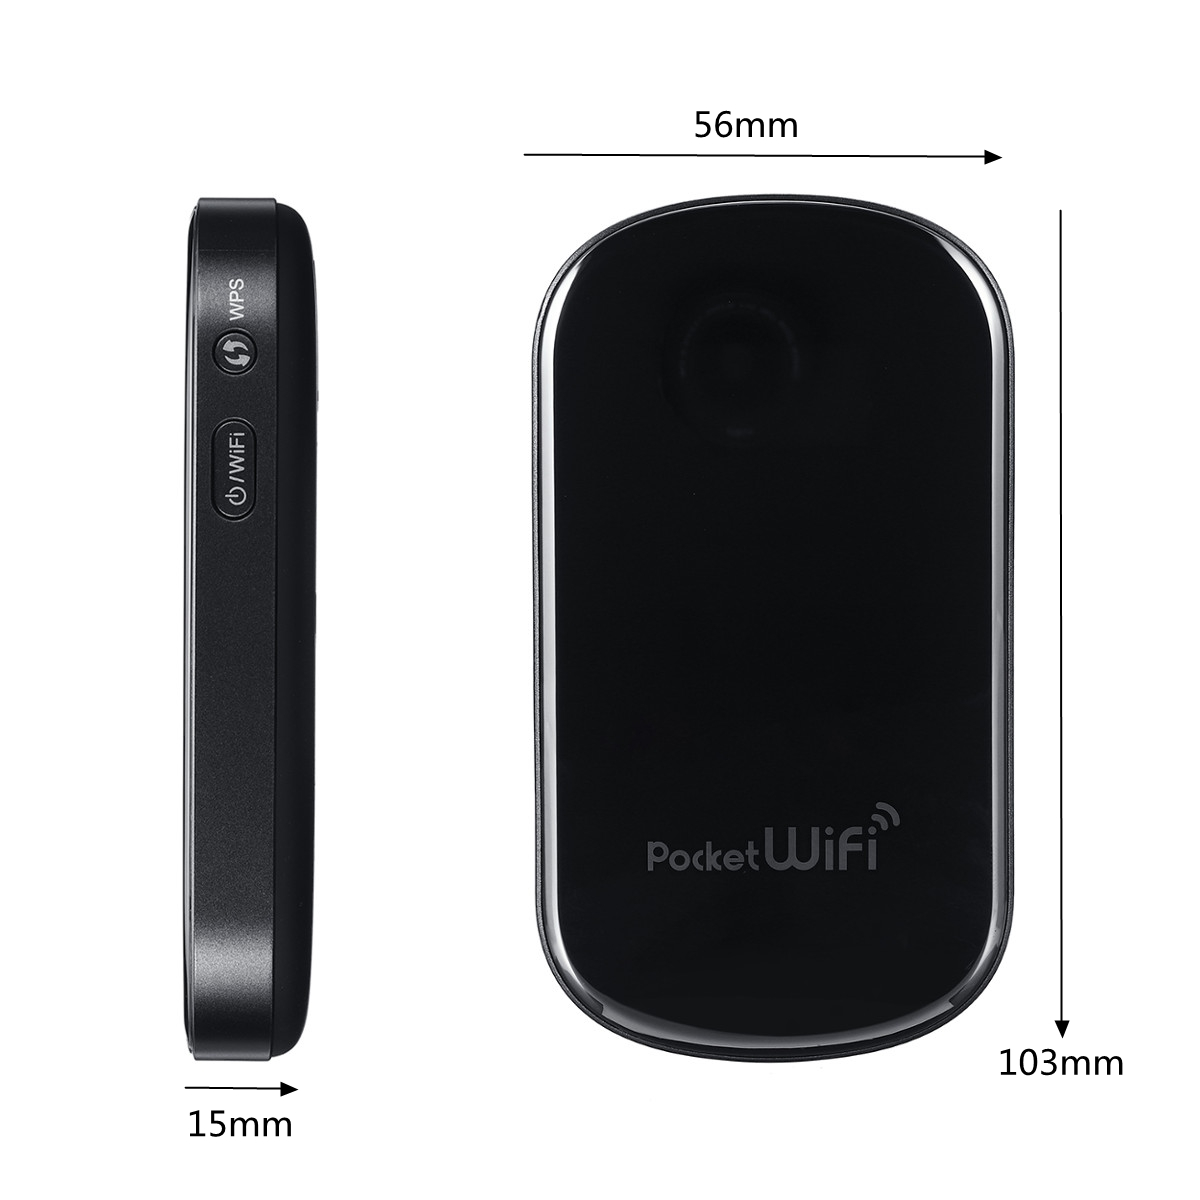 3G Router GP02 Portable WiFi 3G 2100MHz Professional Encryption Hotspot WiFi Repeater Wireless Router MiFi